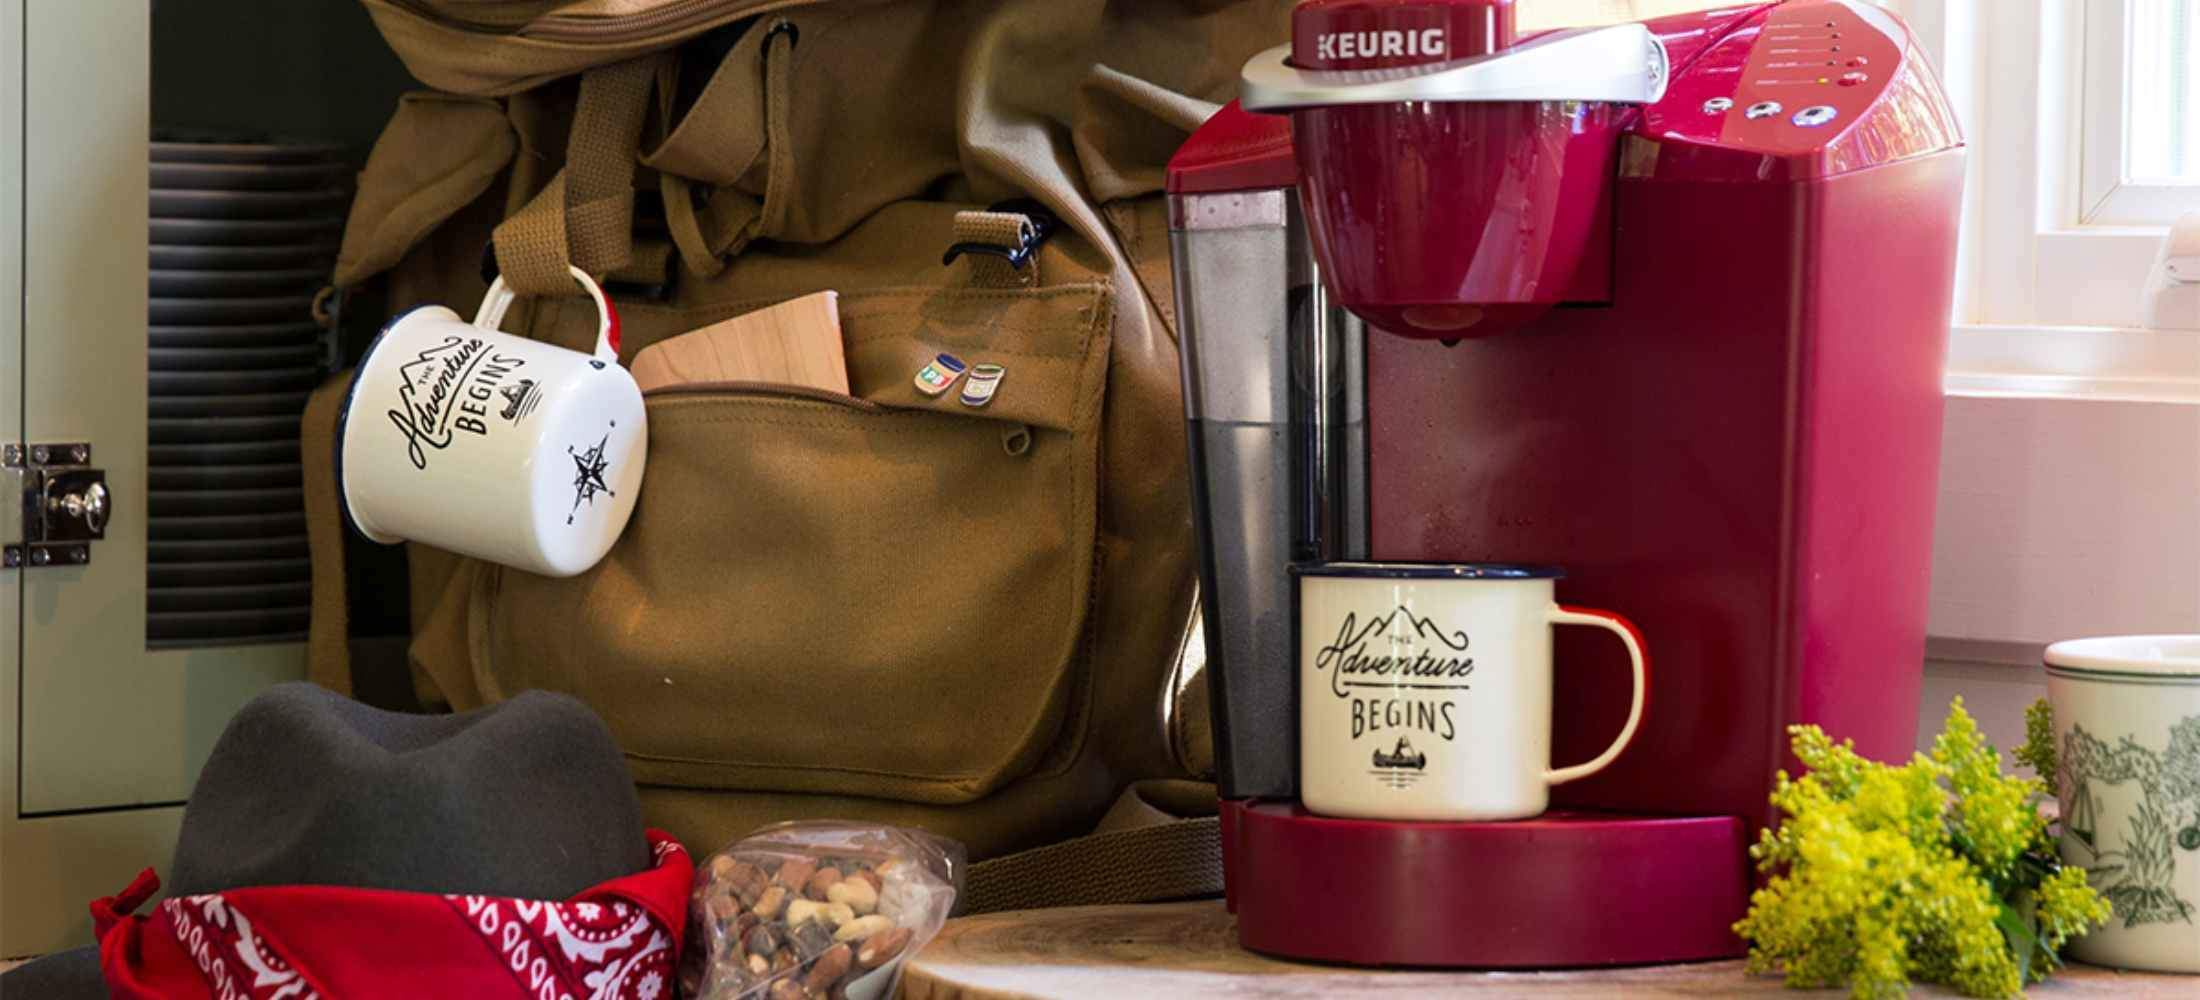 Easy Keurig Coffee Machine Hacks You'll Wish You Already Knew